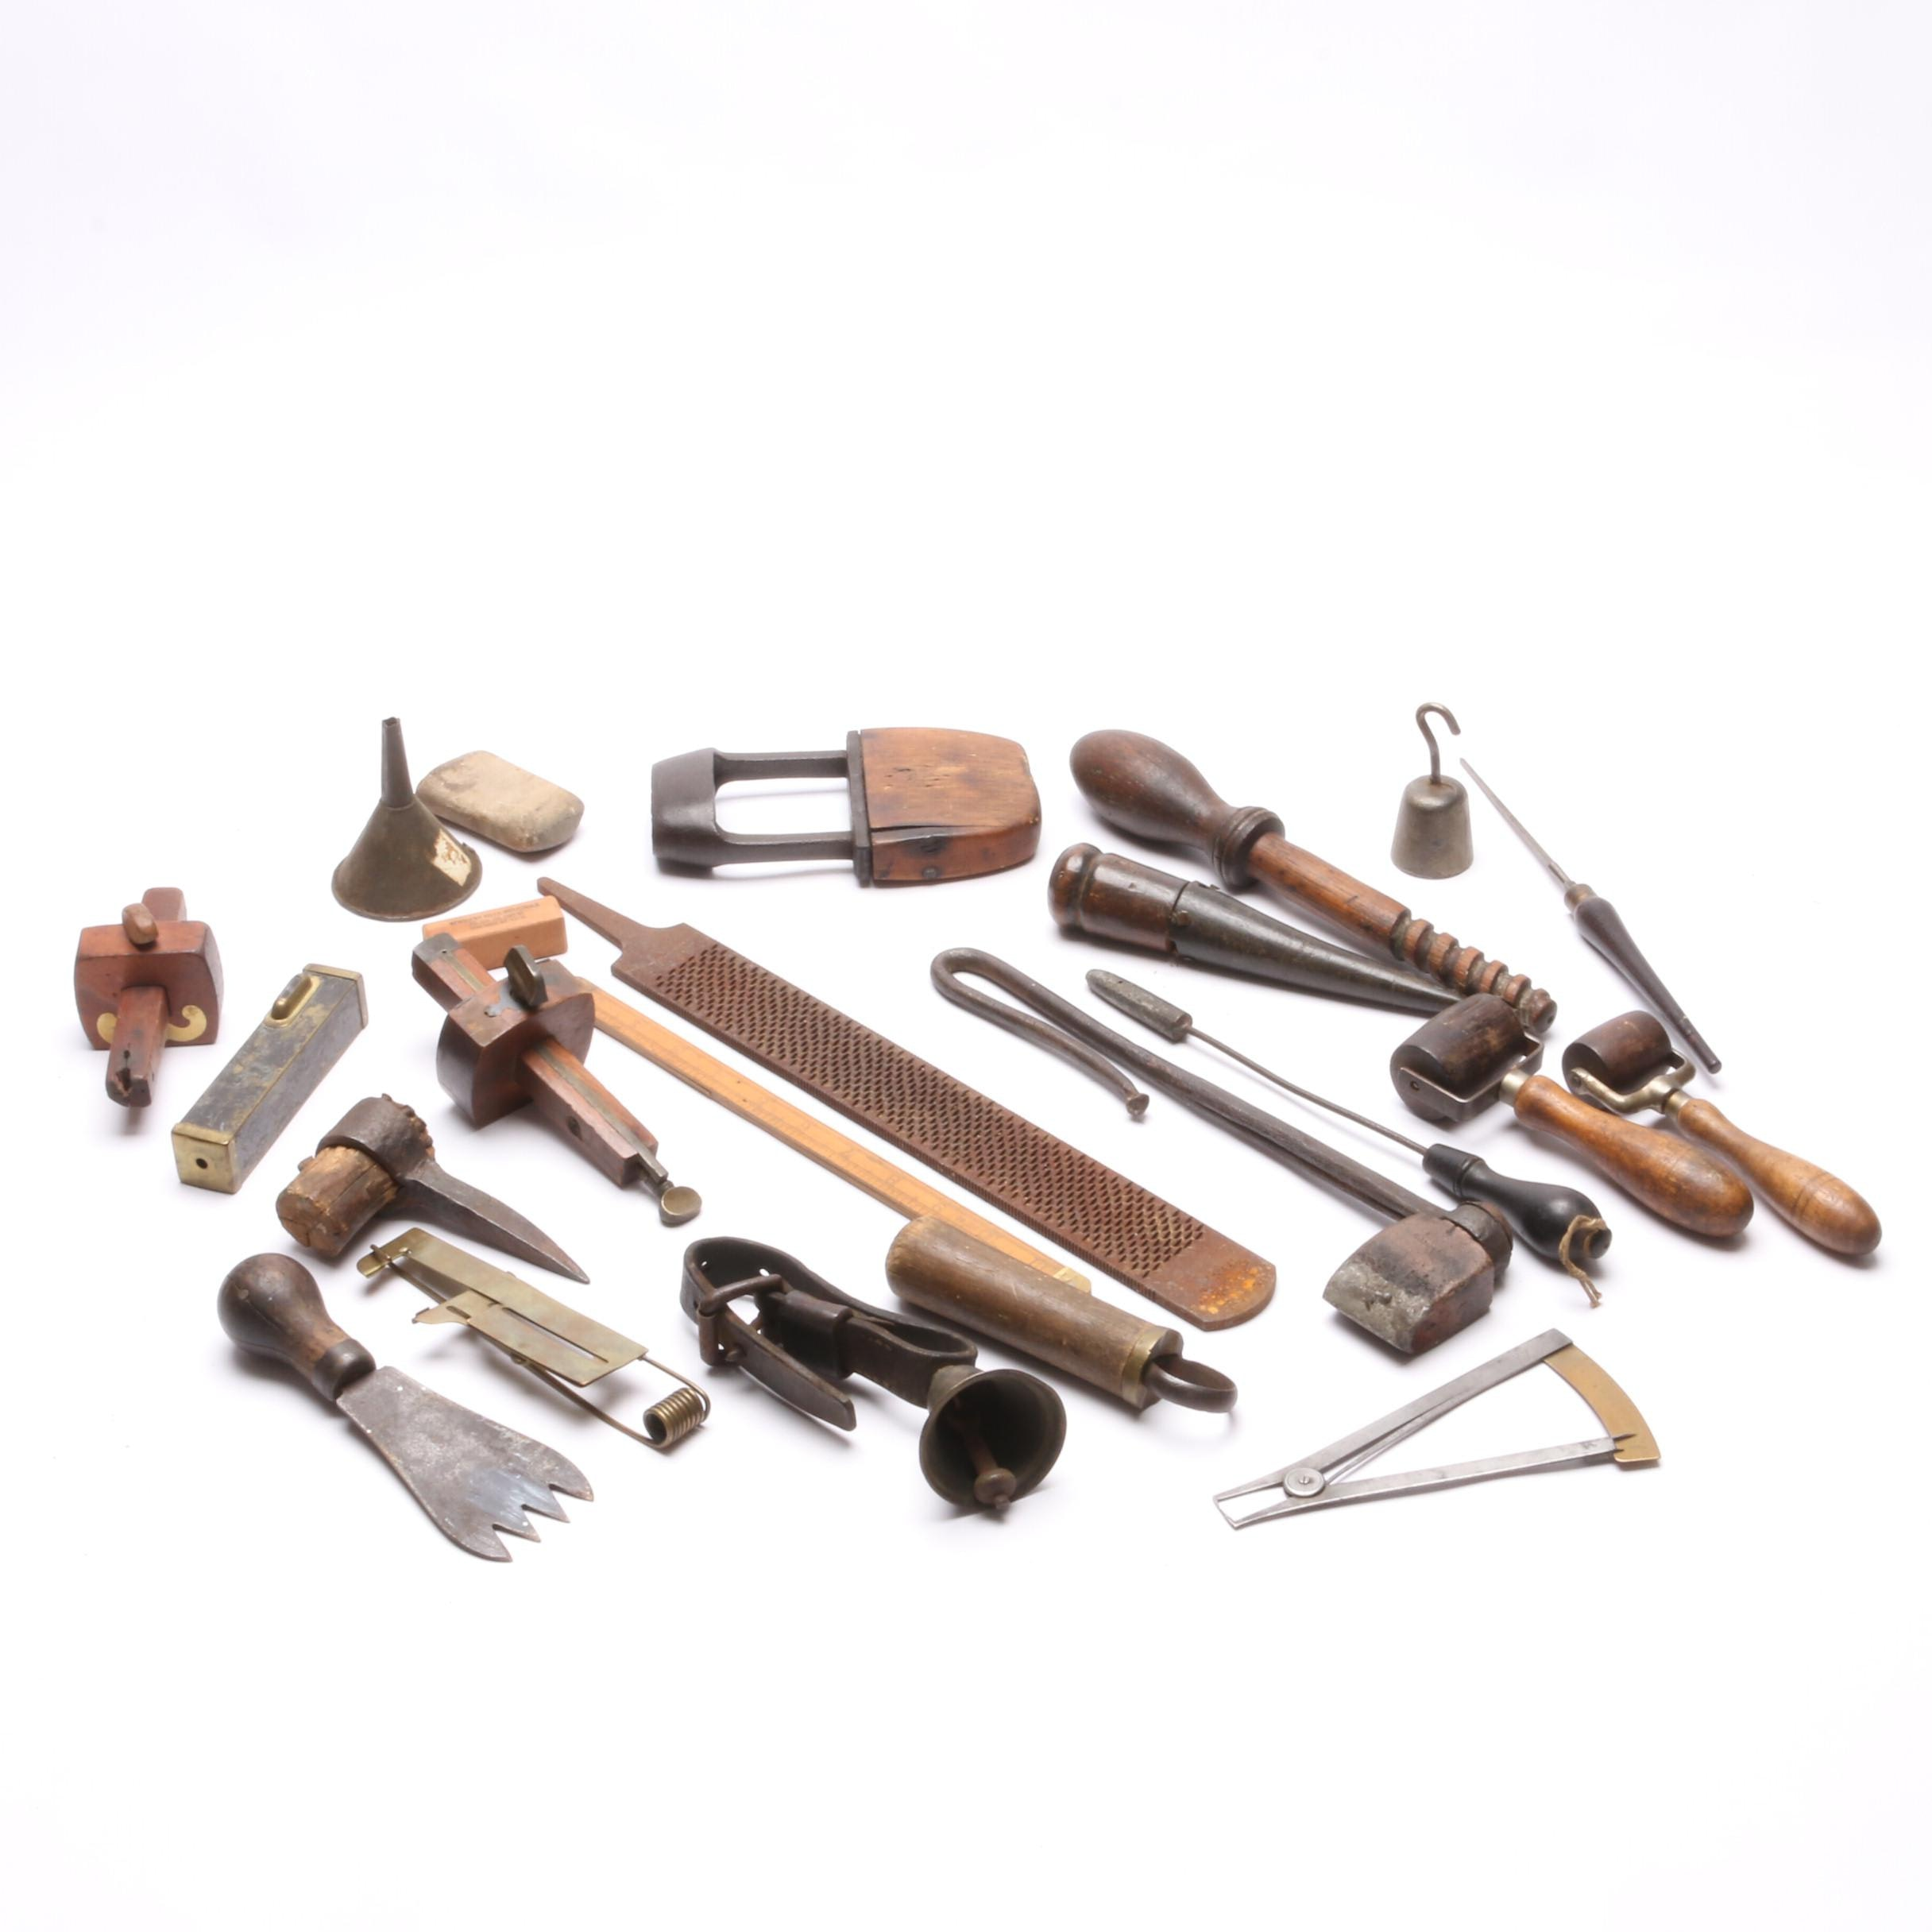 Antique Leather Working and Carpentry Hand Tools